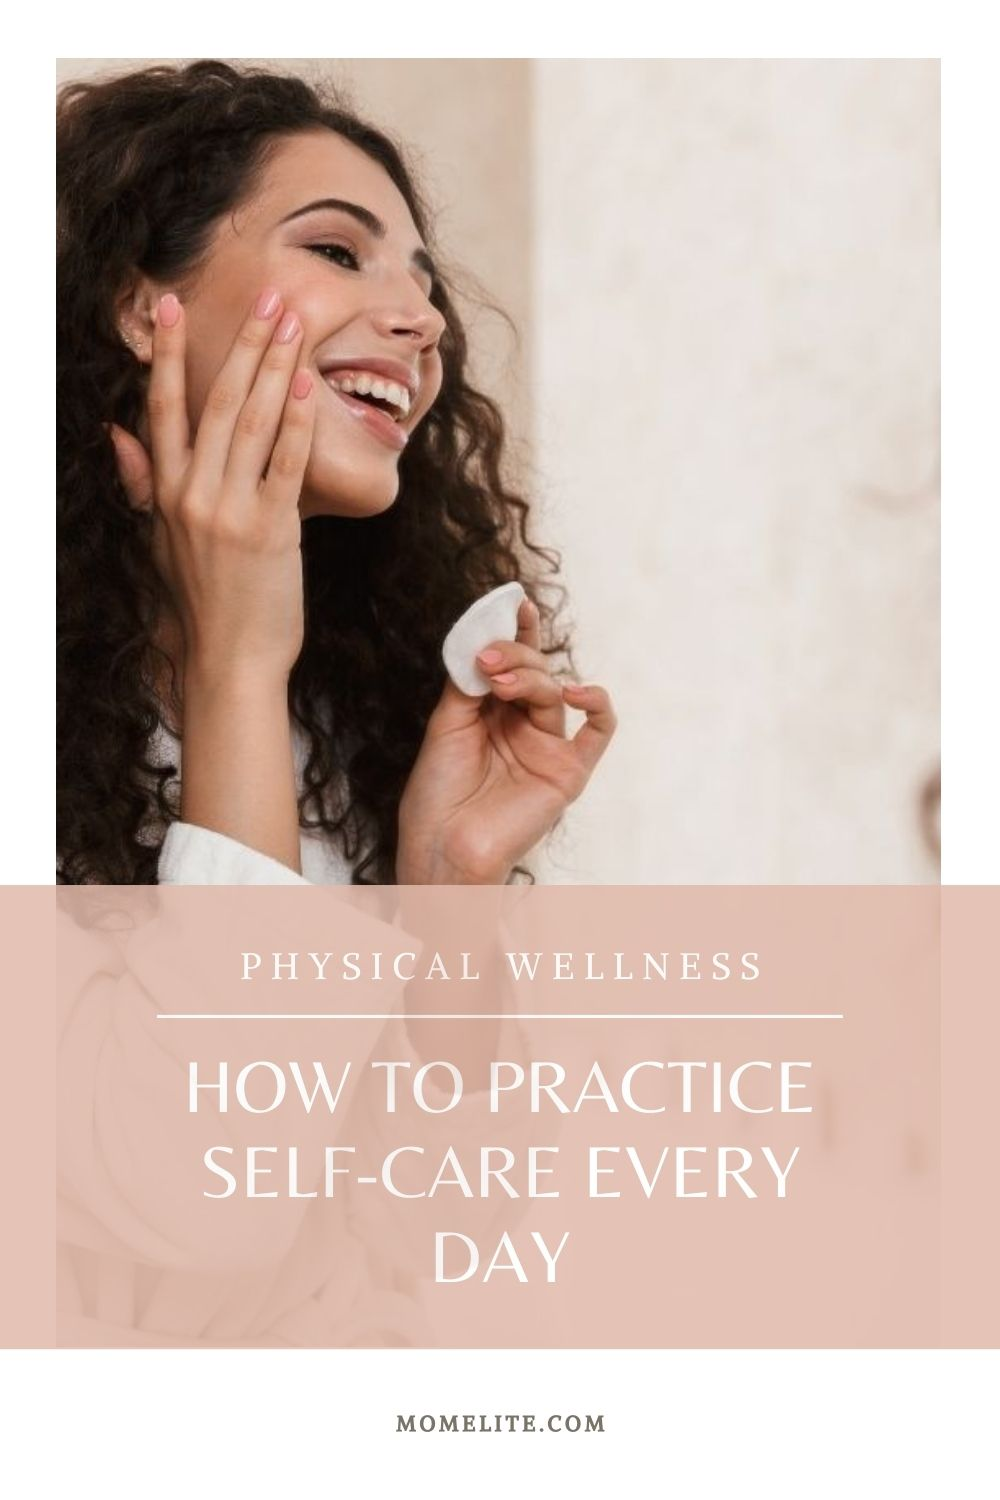 PHYSICAL WELLNESS: HOW TO PRACTICE SELF-CARE EVERY DAY